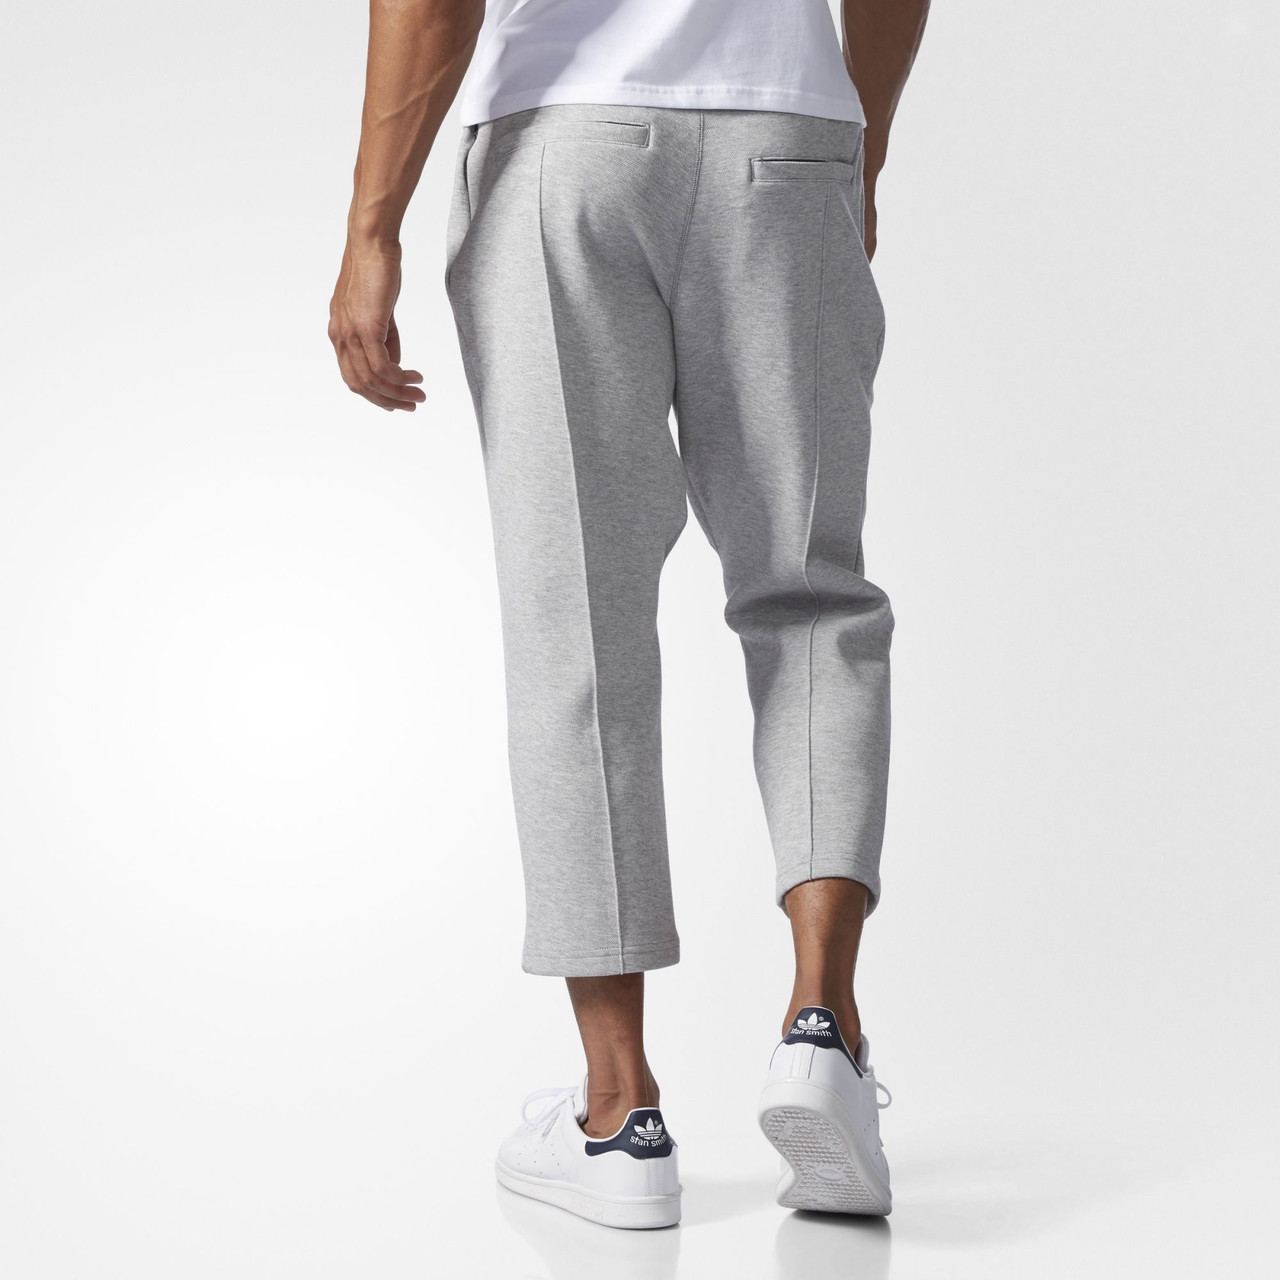 ... Мужские брюки Adidas Originals Instinct Cropped Pintuck (Артикул  BK0555),  ... f06327924c1